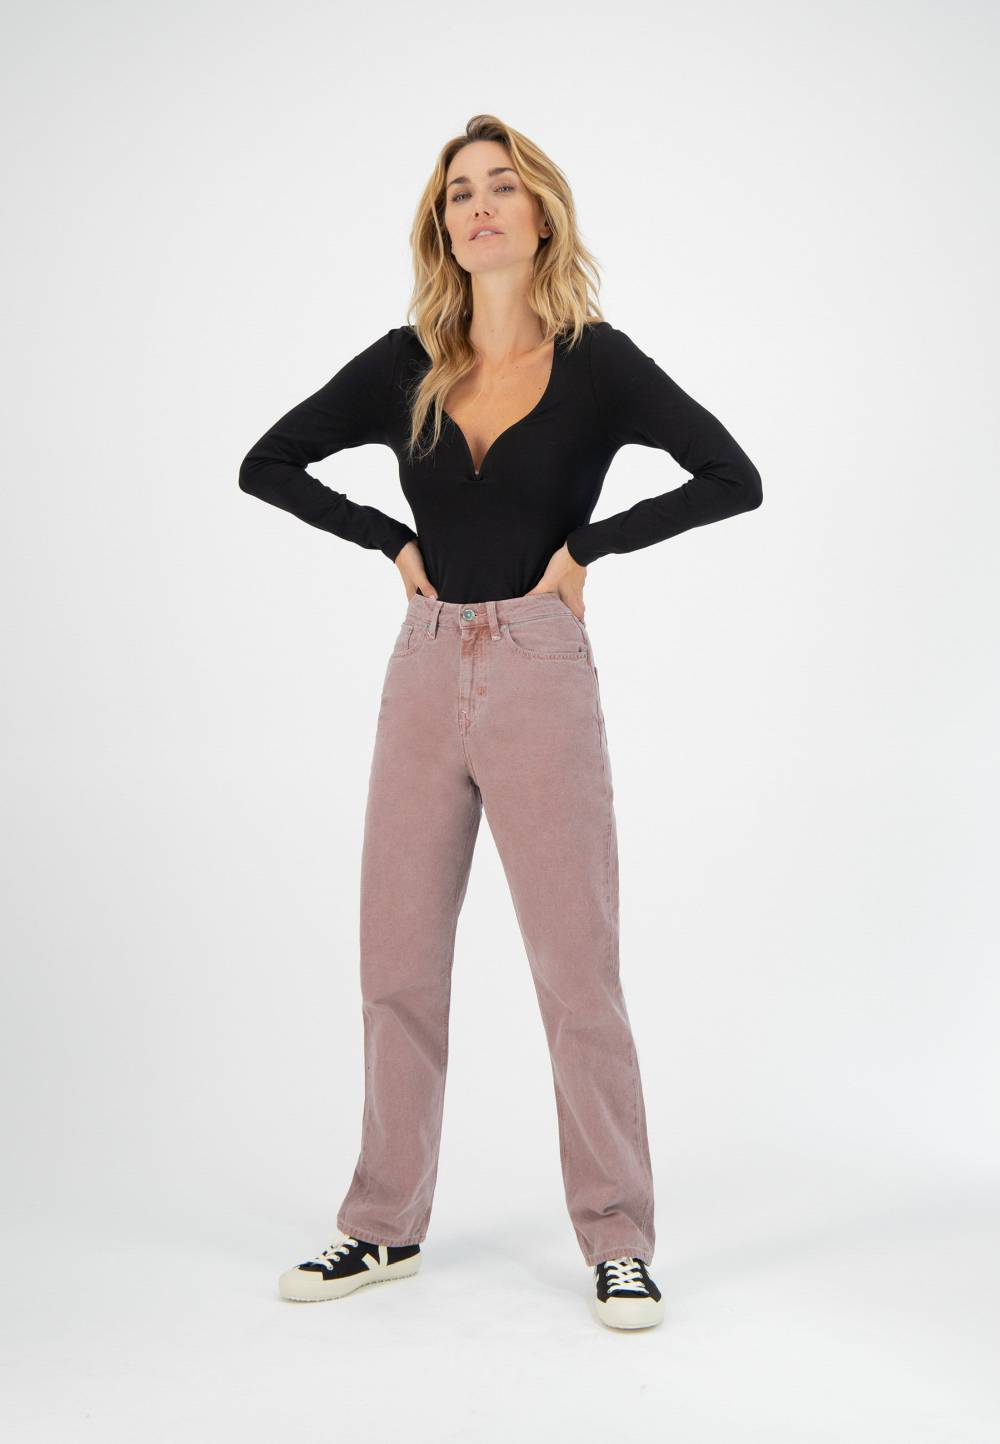 mud jeans inverted triangle outfits